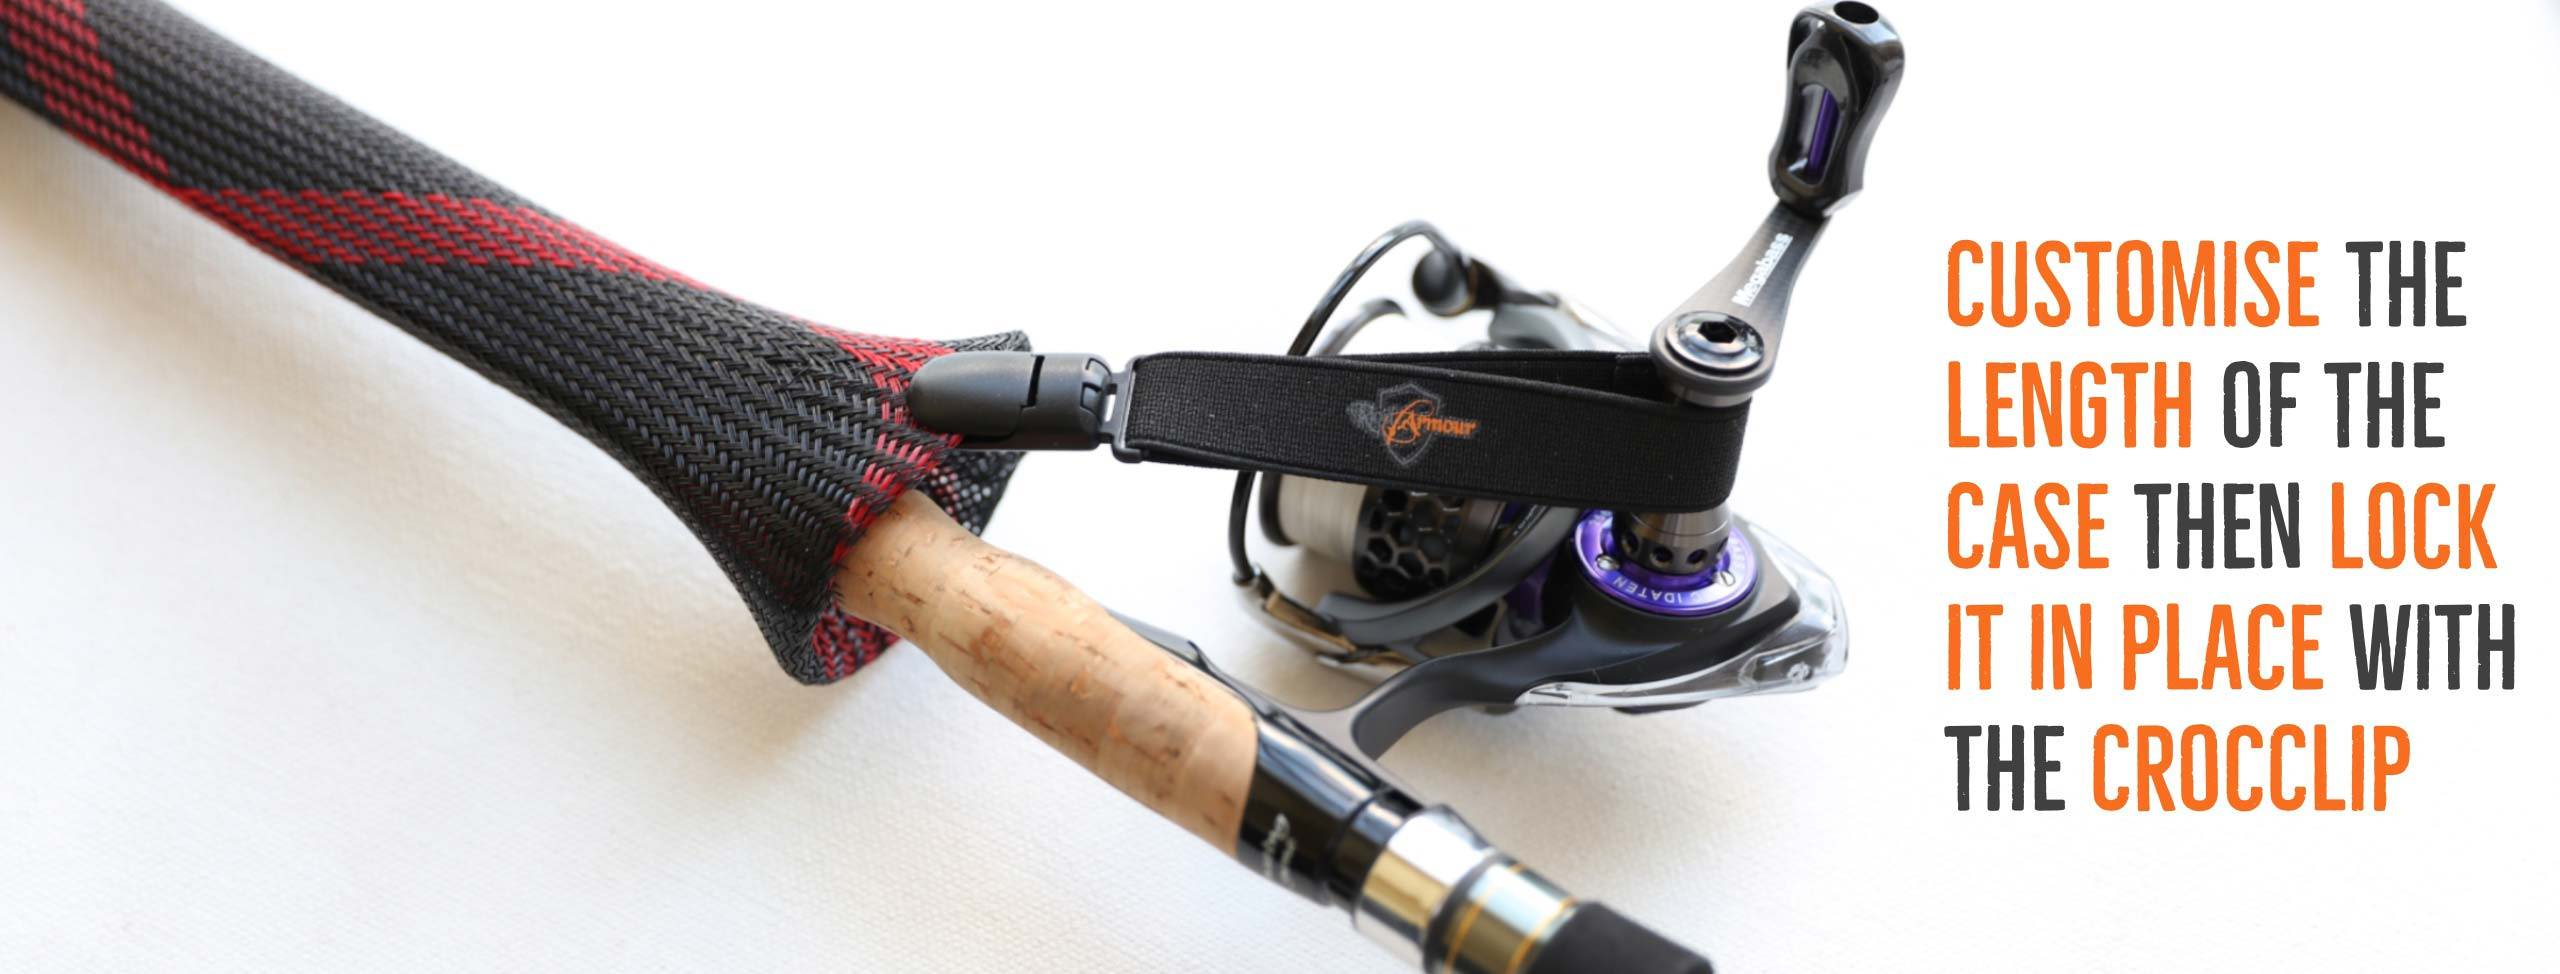 The CrocClip aims to customise the length of your fishing rod case and lock the fishing cover in place